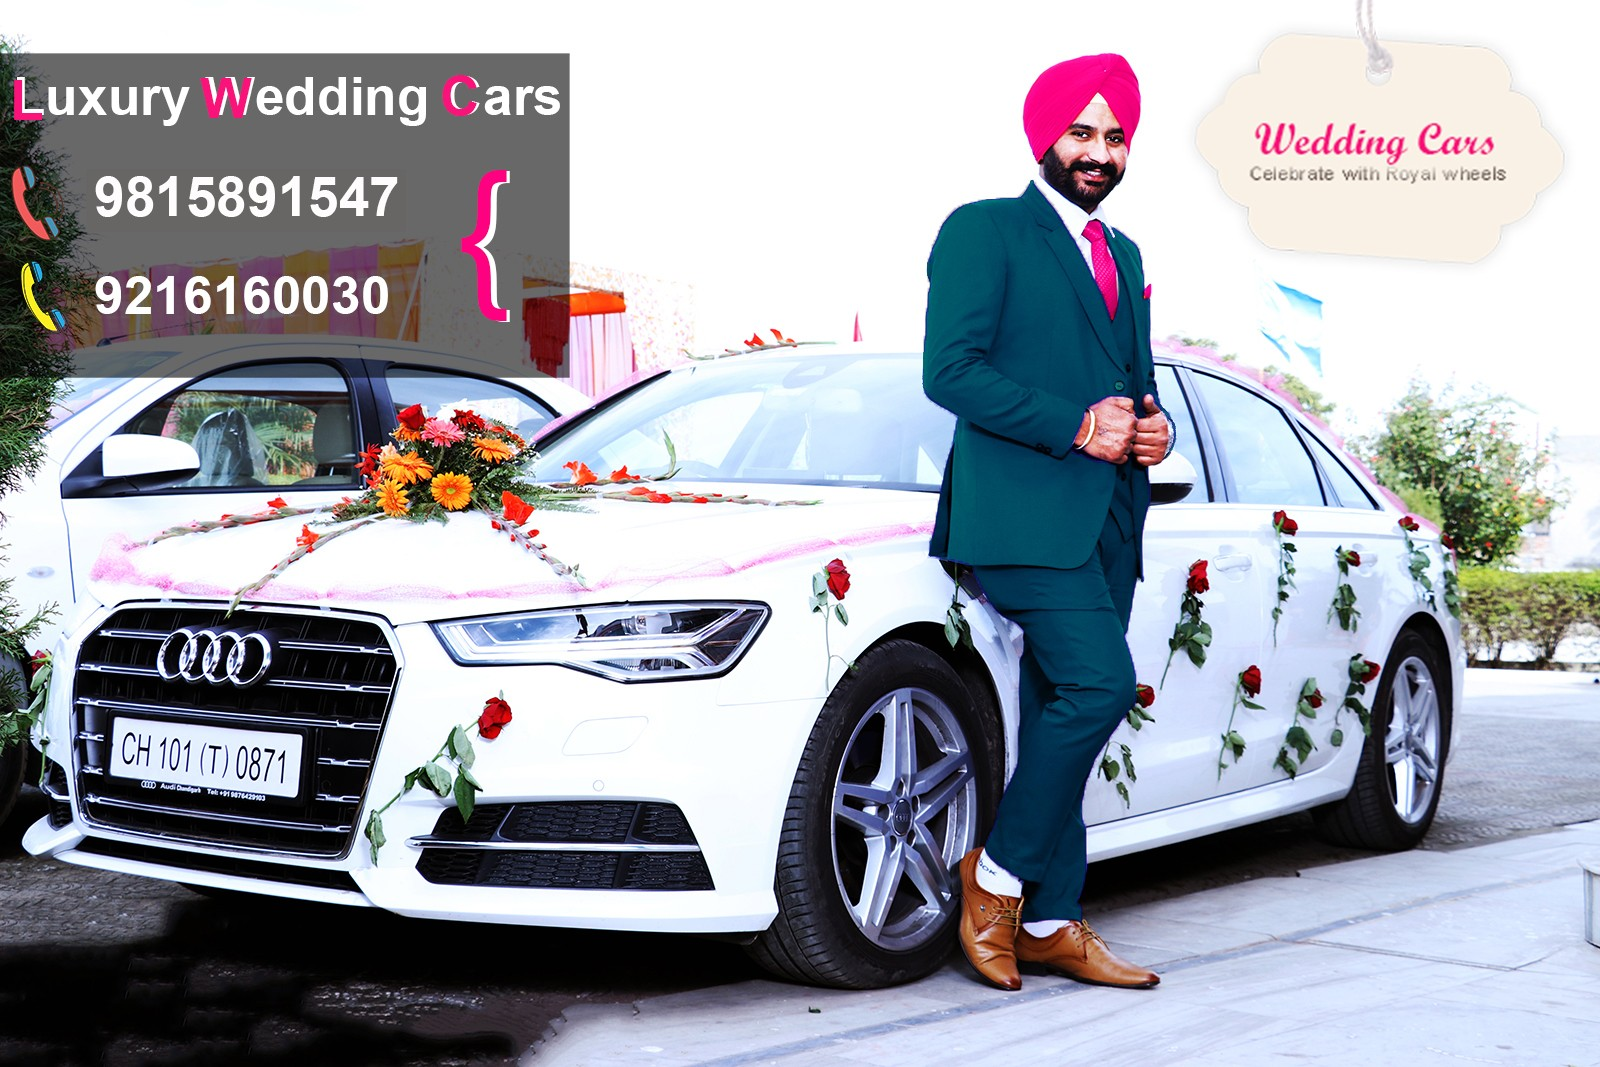 Chandigarh Audi Car Rental For Wedding, Luxury Audi Car Rental in Chandigarh